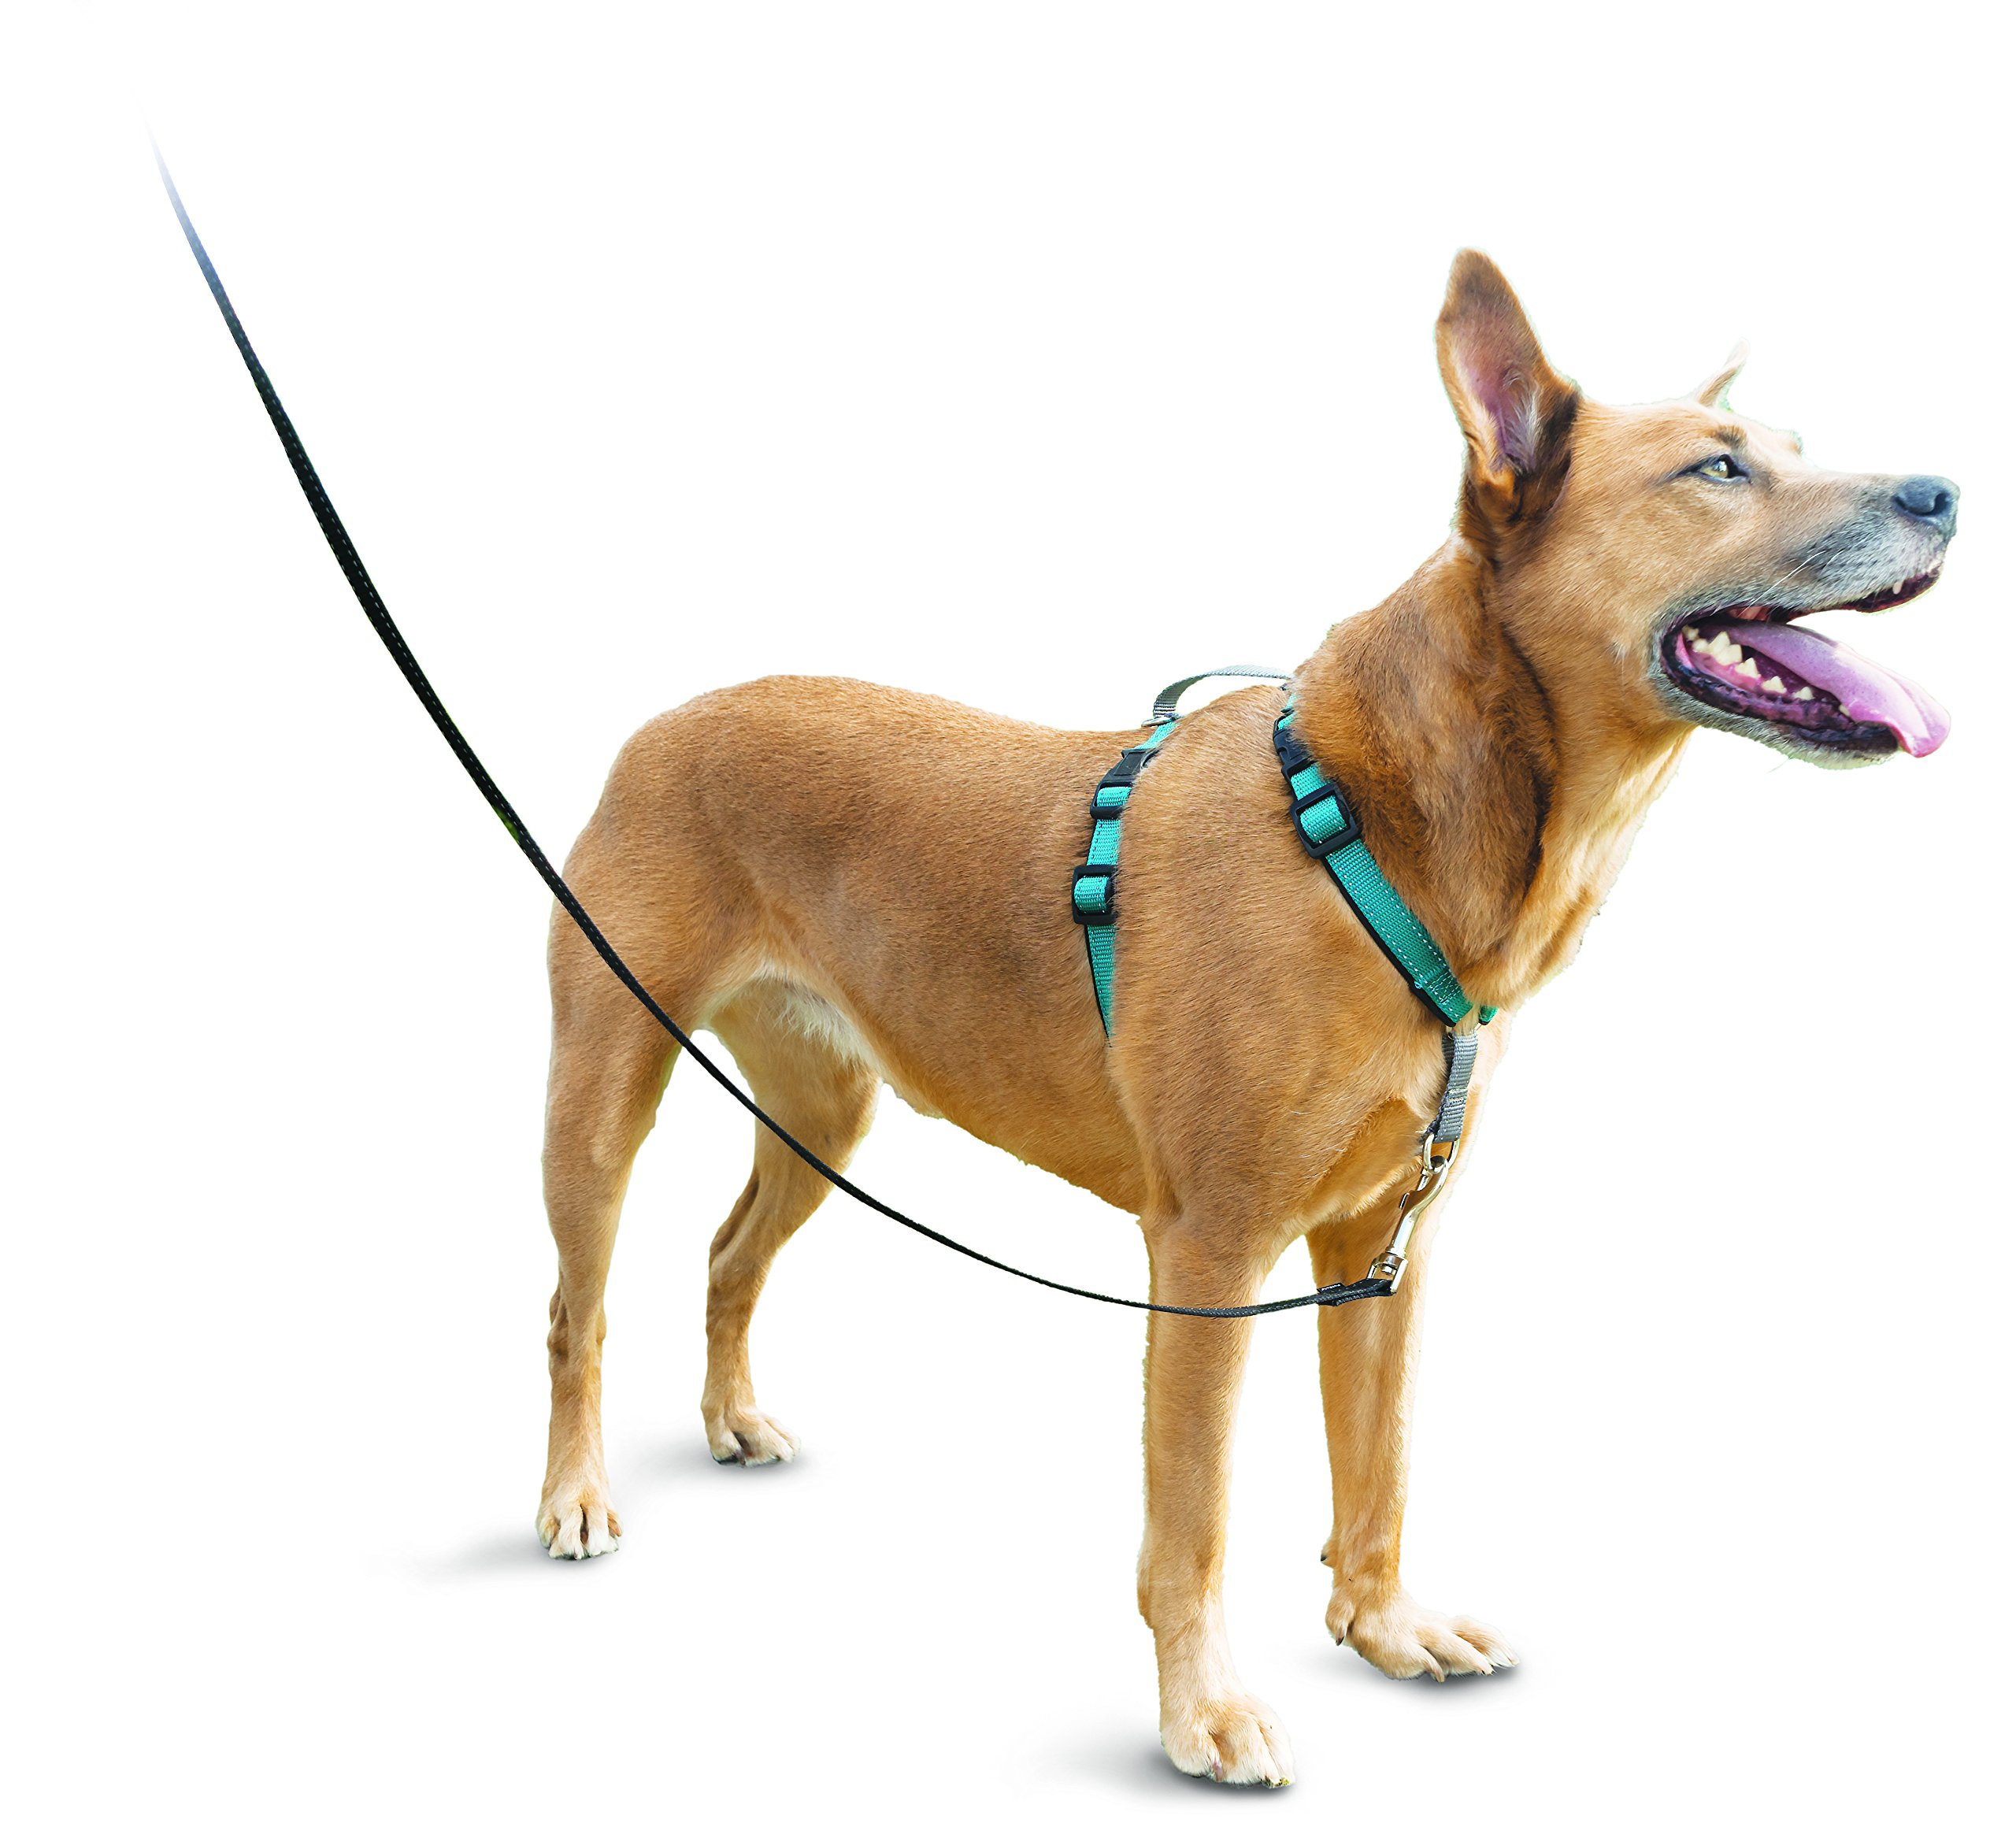 PetSafe 3in1 Harness, from The Makers of The Easy Walk Harness, Fully Adjustable No-Pull Dog Harness by PetSafe